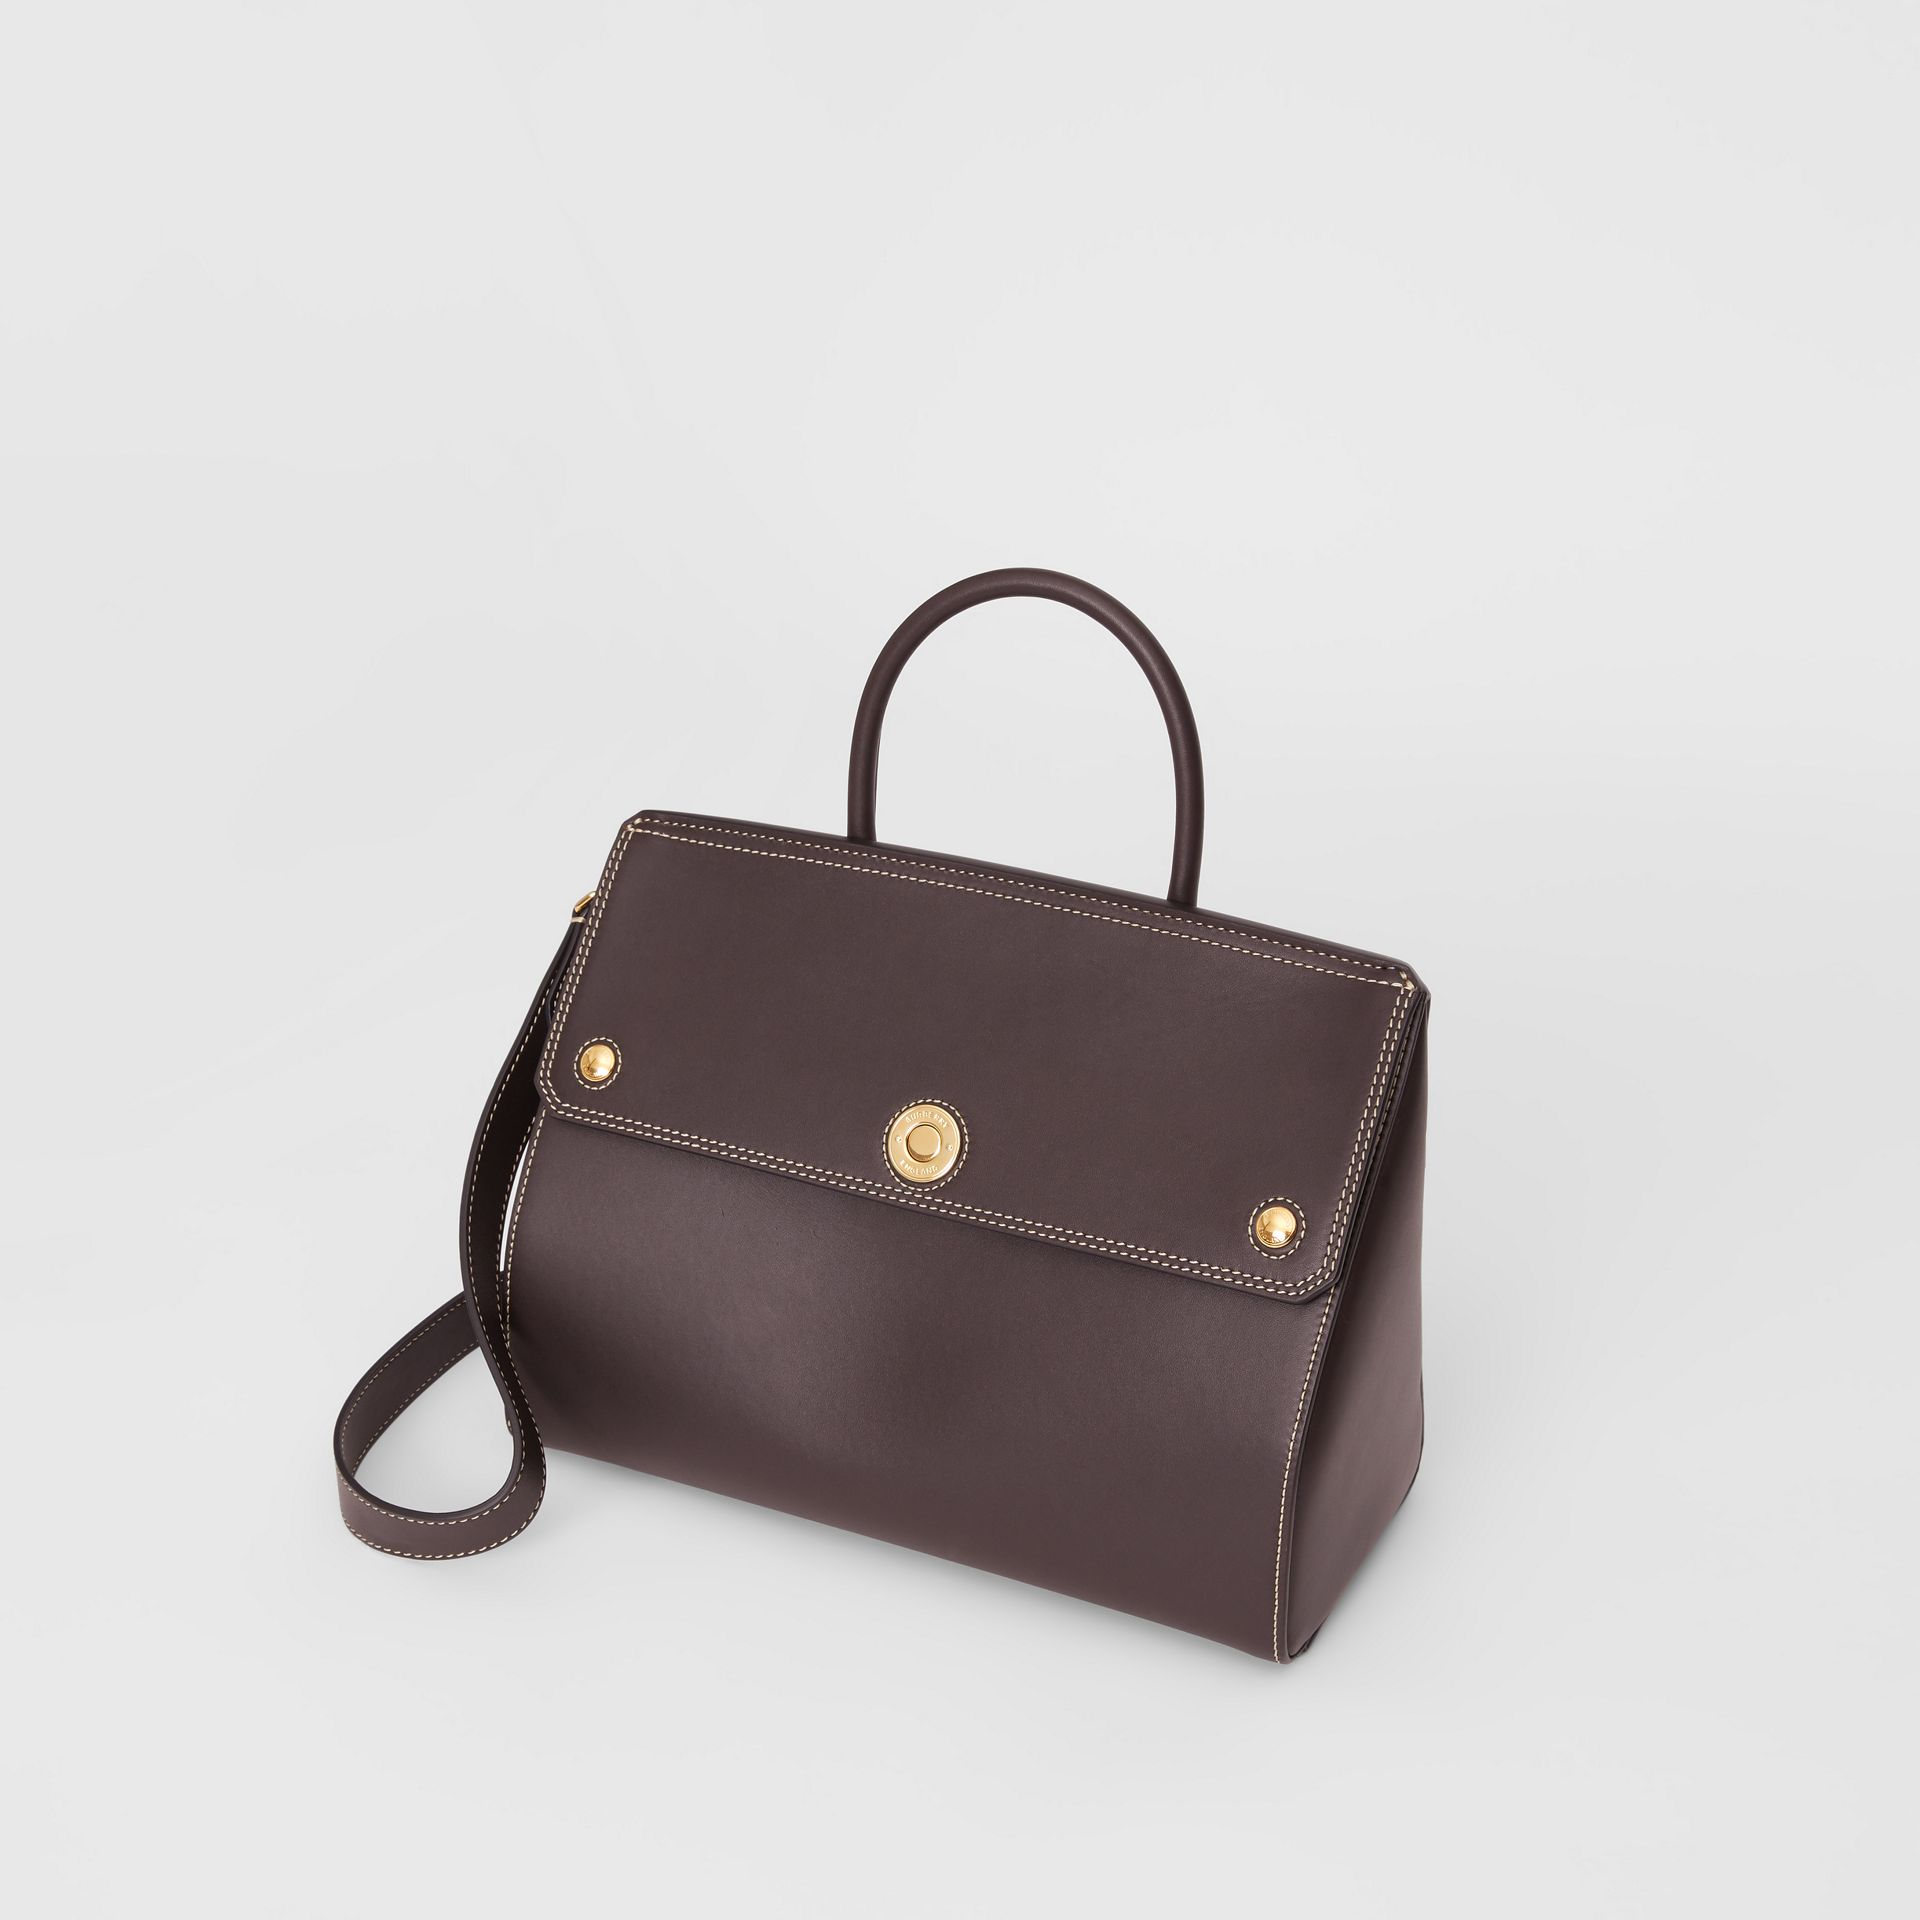 Small Leather Elizabeth Bag in Coffee - Women | Burberry Canada - gallery image 3